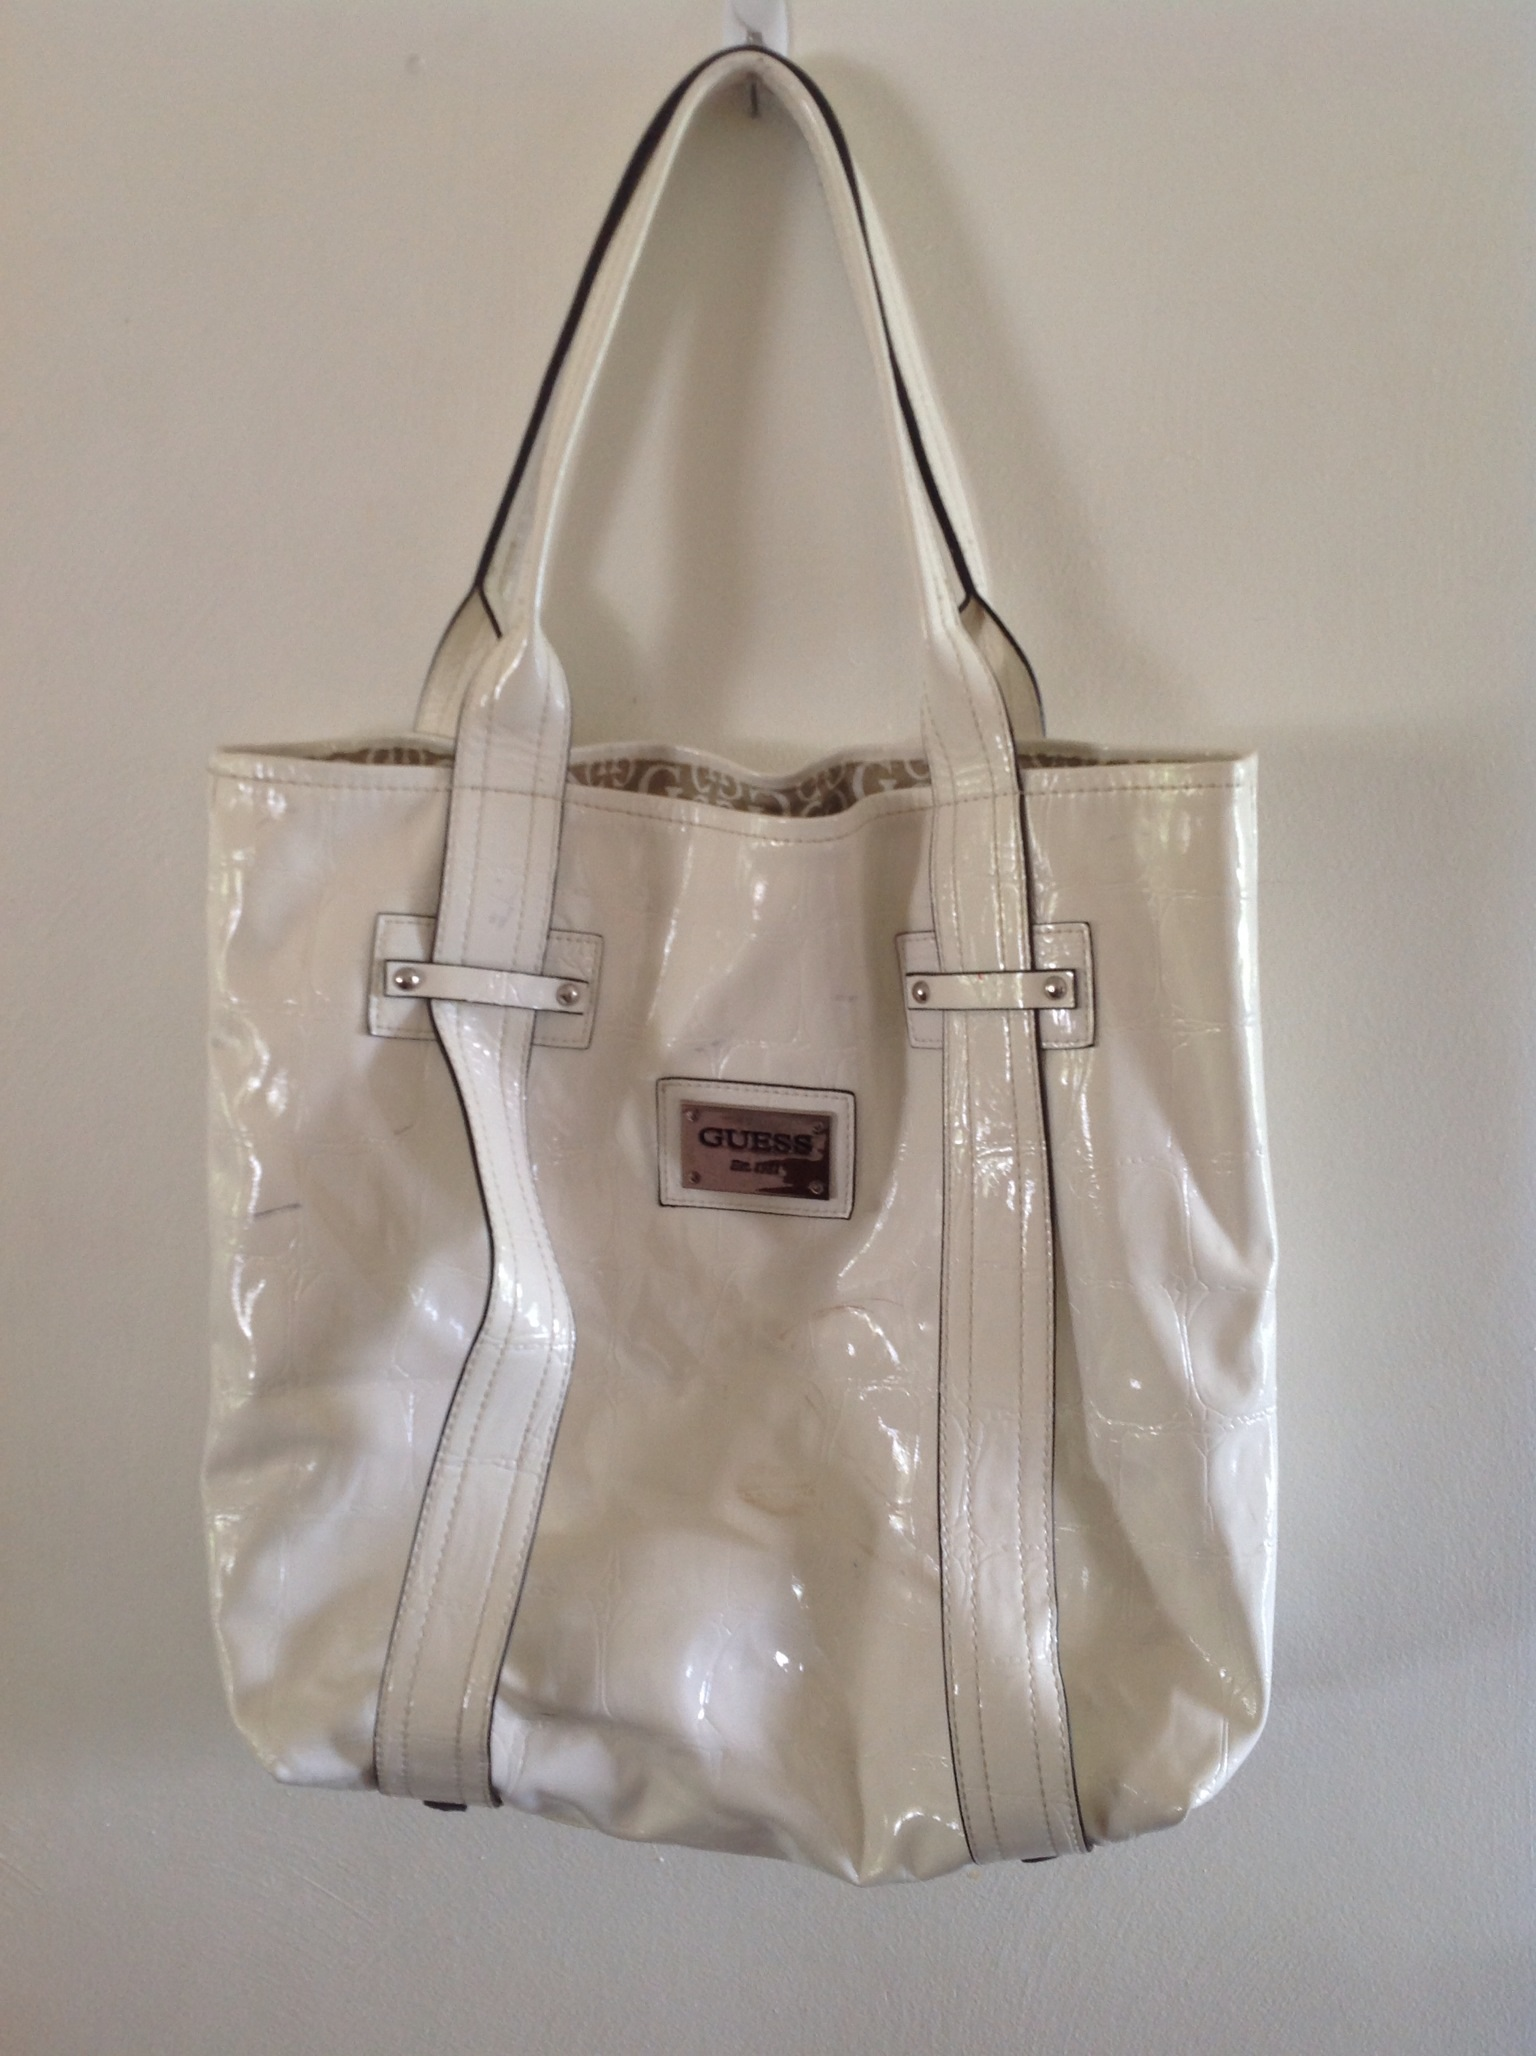 White Guess bag.